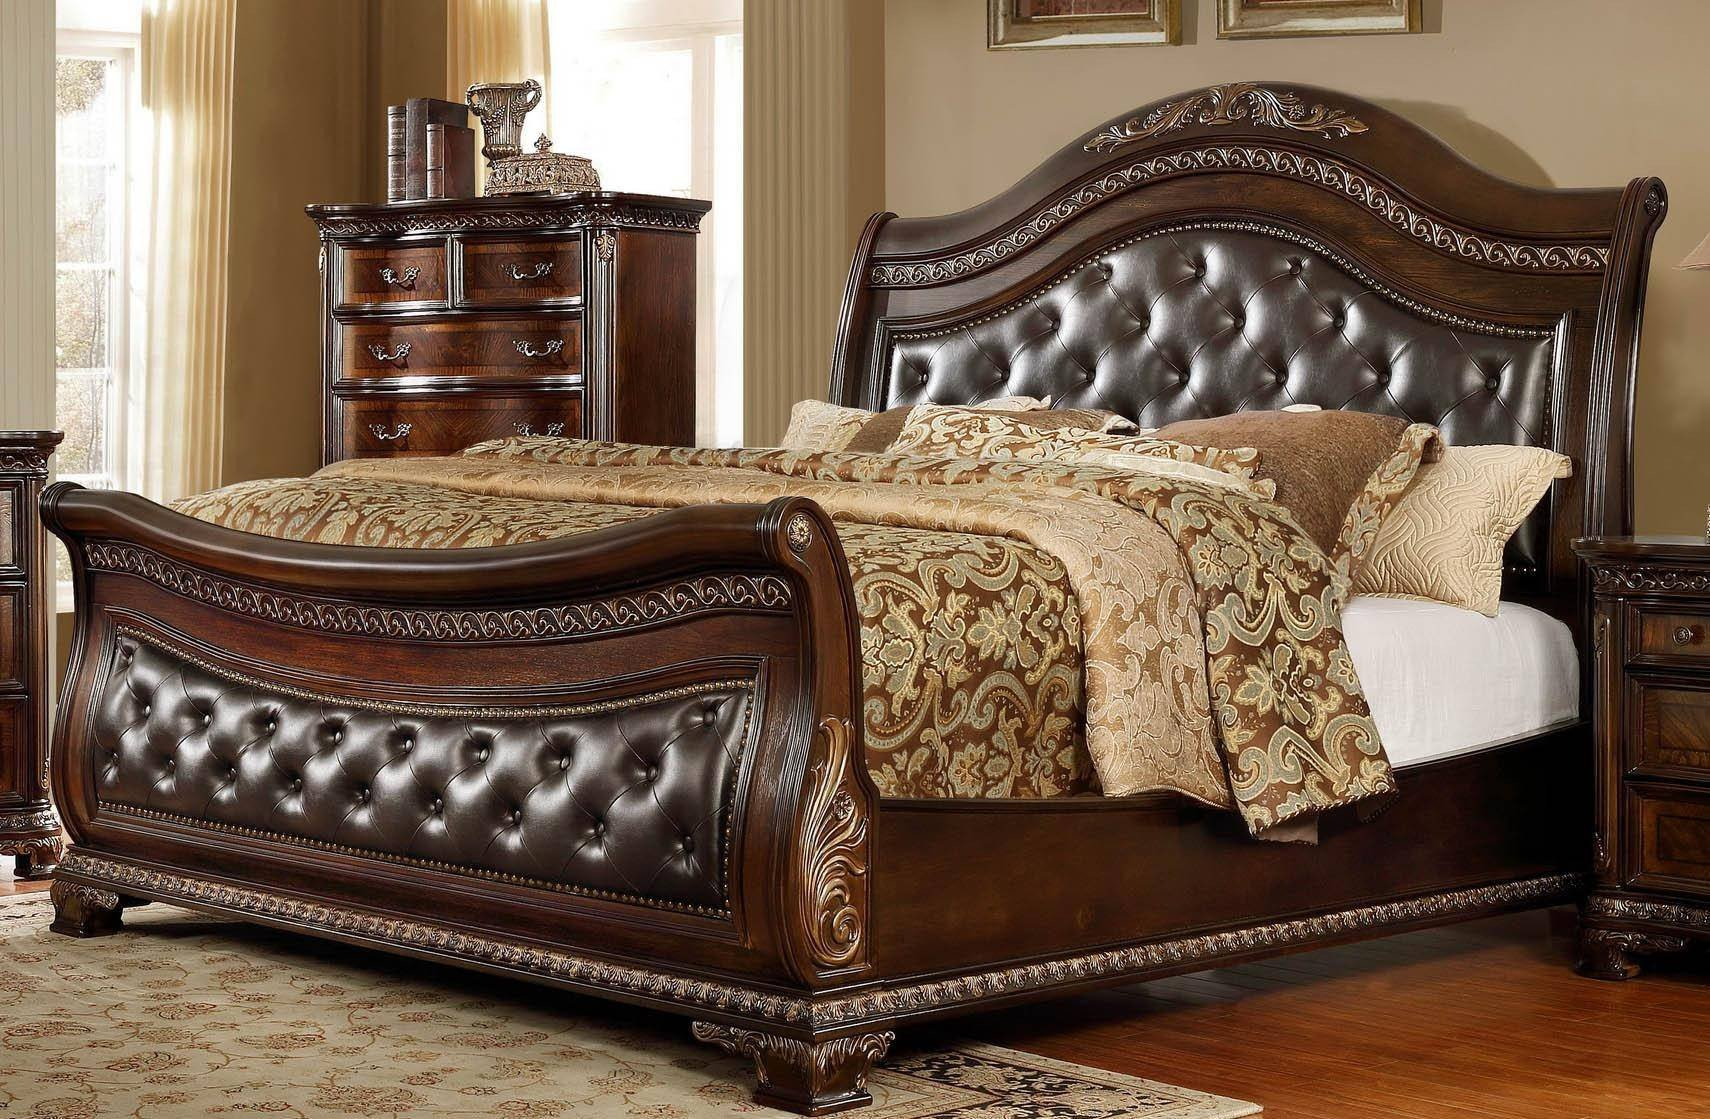 White Full Size Bedroom Set Luxury Mcferran B9588 King Sleigh Bed In Oak Veneers Dark Cherry Finish Leather